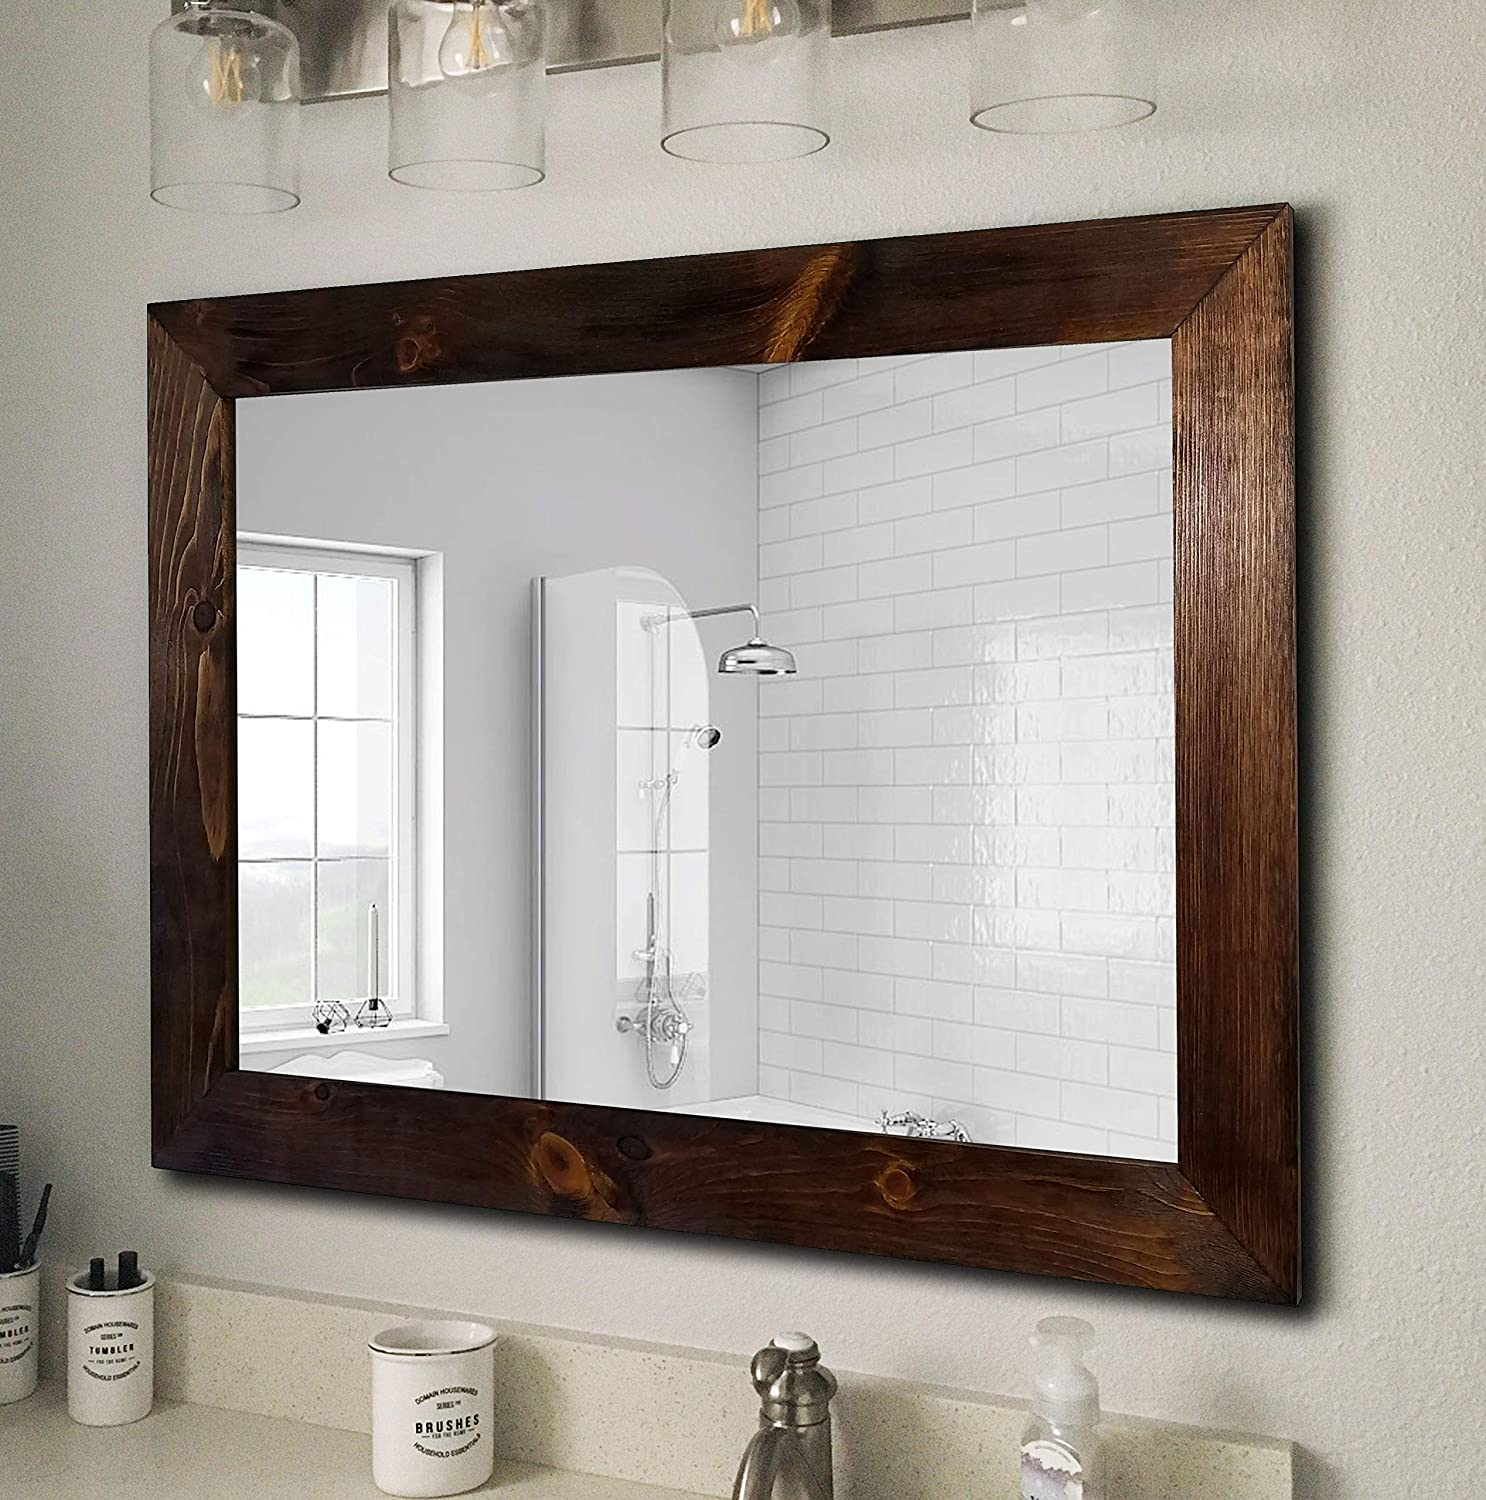 Shiplap Large Wooden Framed Mirror Available in 4 Sizes and 20 Colors: Shown in English Chestnut Large Wall Mirror Rustic Barnwood Style Home Decor Mirror Mirror Decor Large Frame Wall Mirror